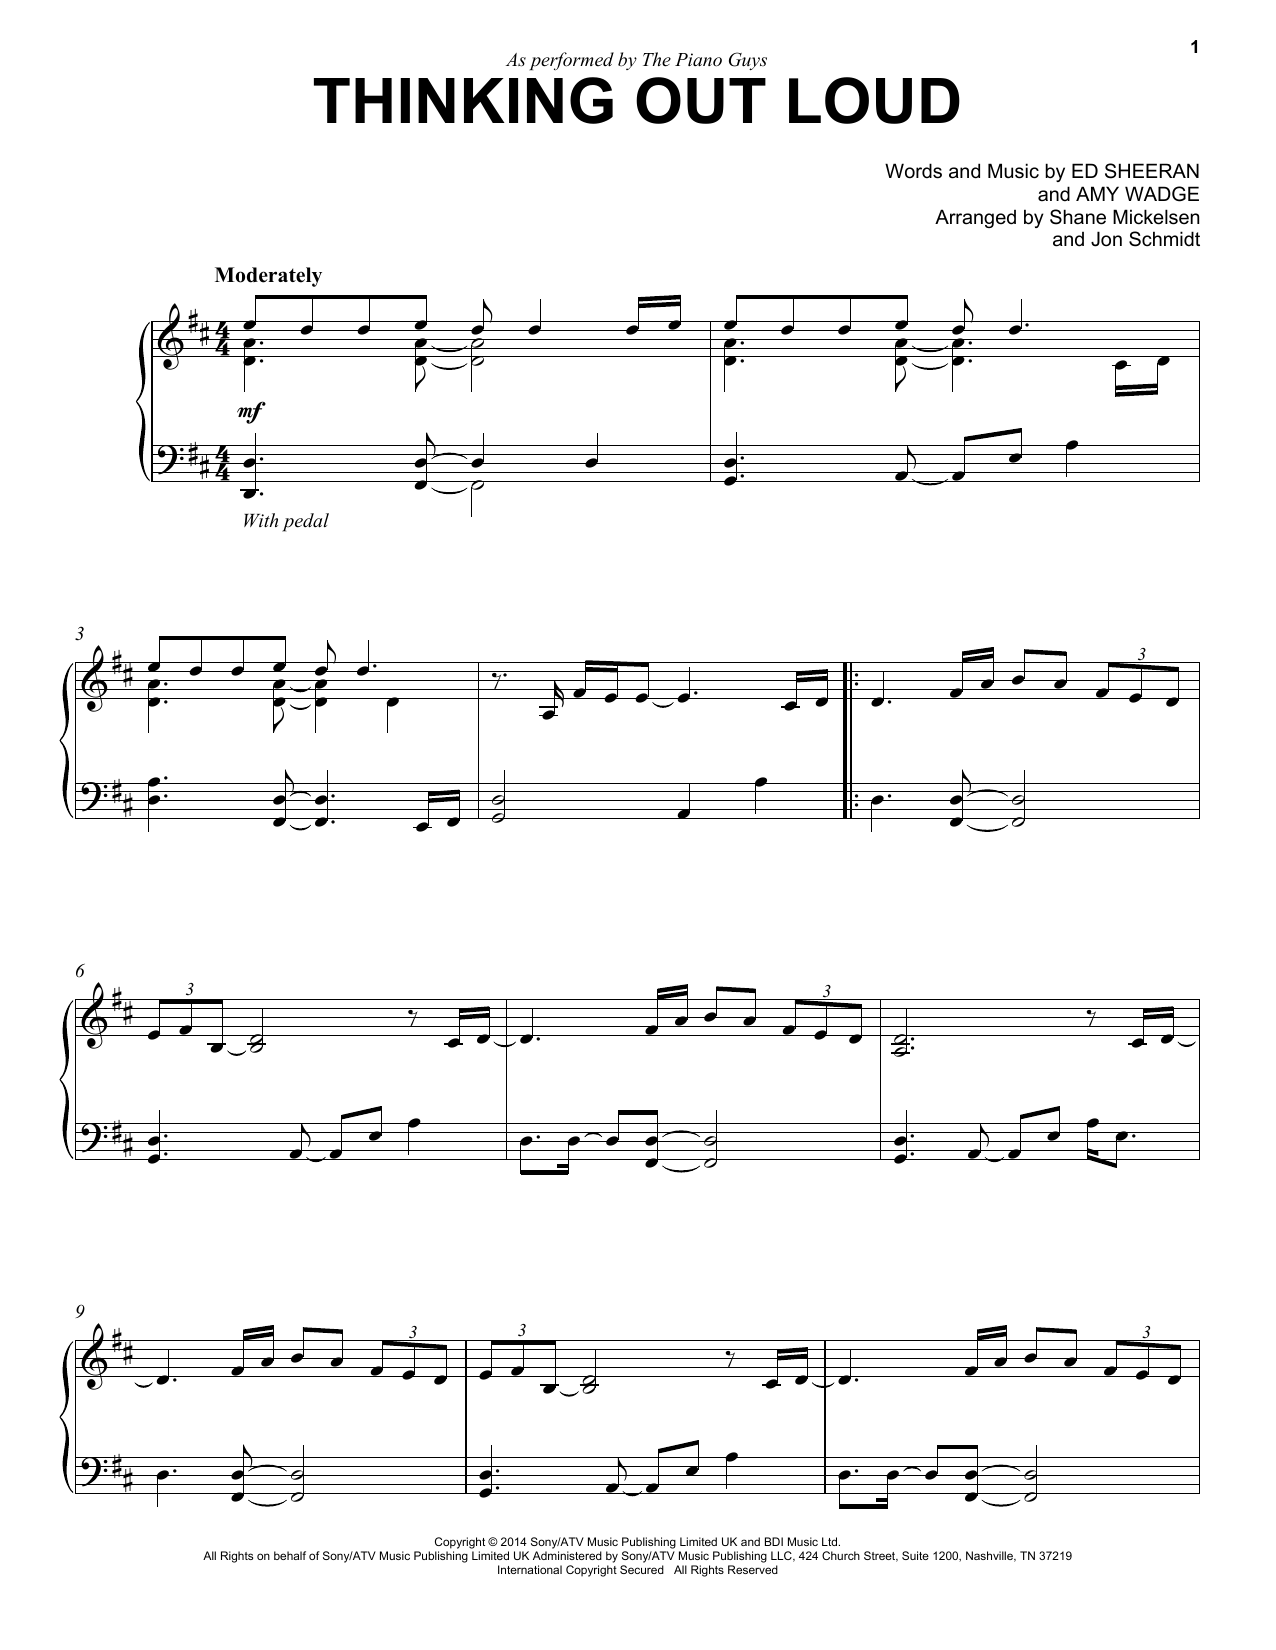 The Piano Guys Thinking Out Loud Sheet Music Notes Chords Download Printable Cello And Piano Sku 163640